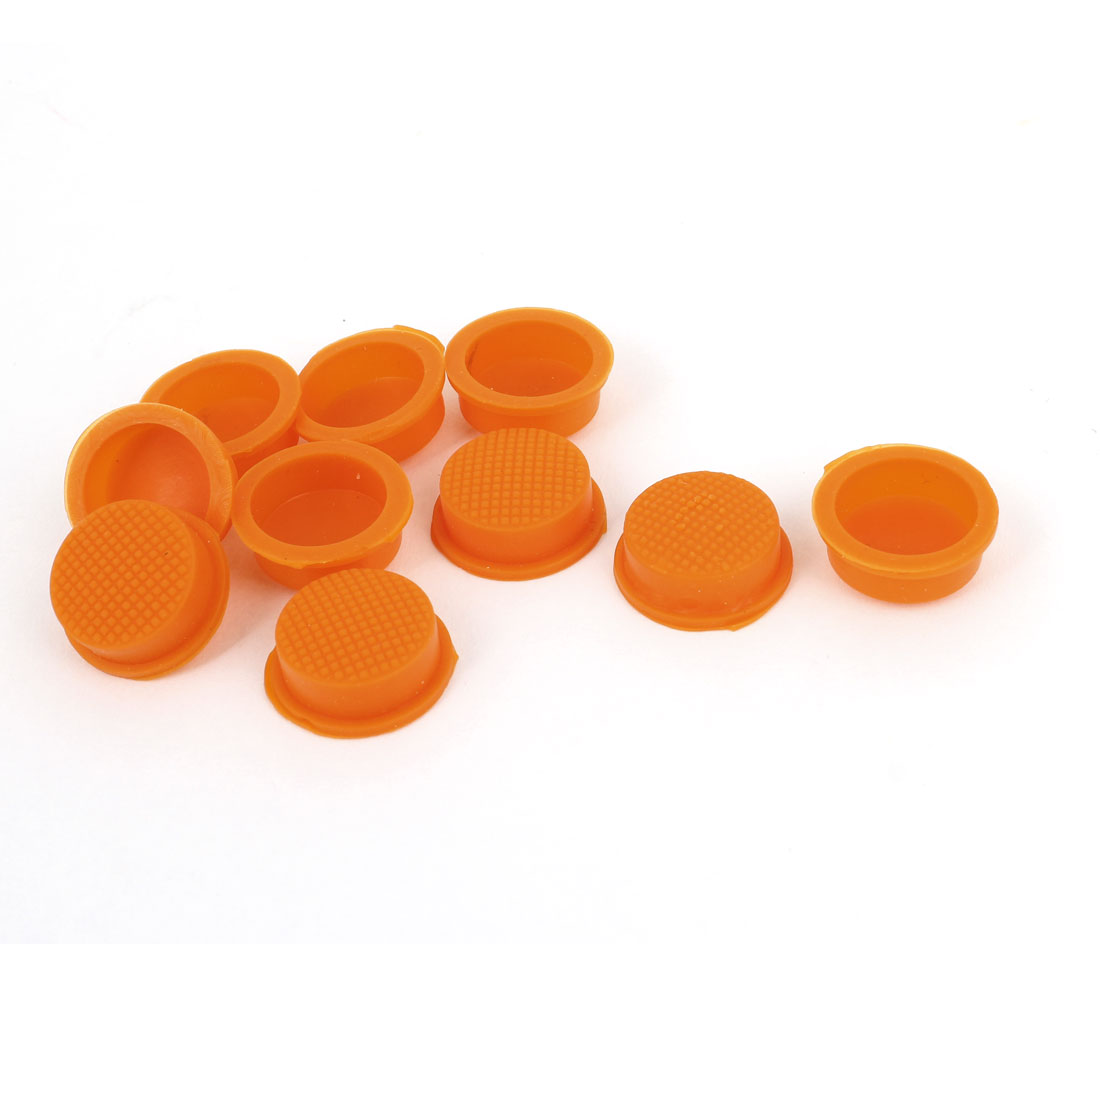 10 Pcs 13mm Dia Waterproof Cover Cap Case Orange for Round Head Rocker Switch